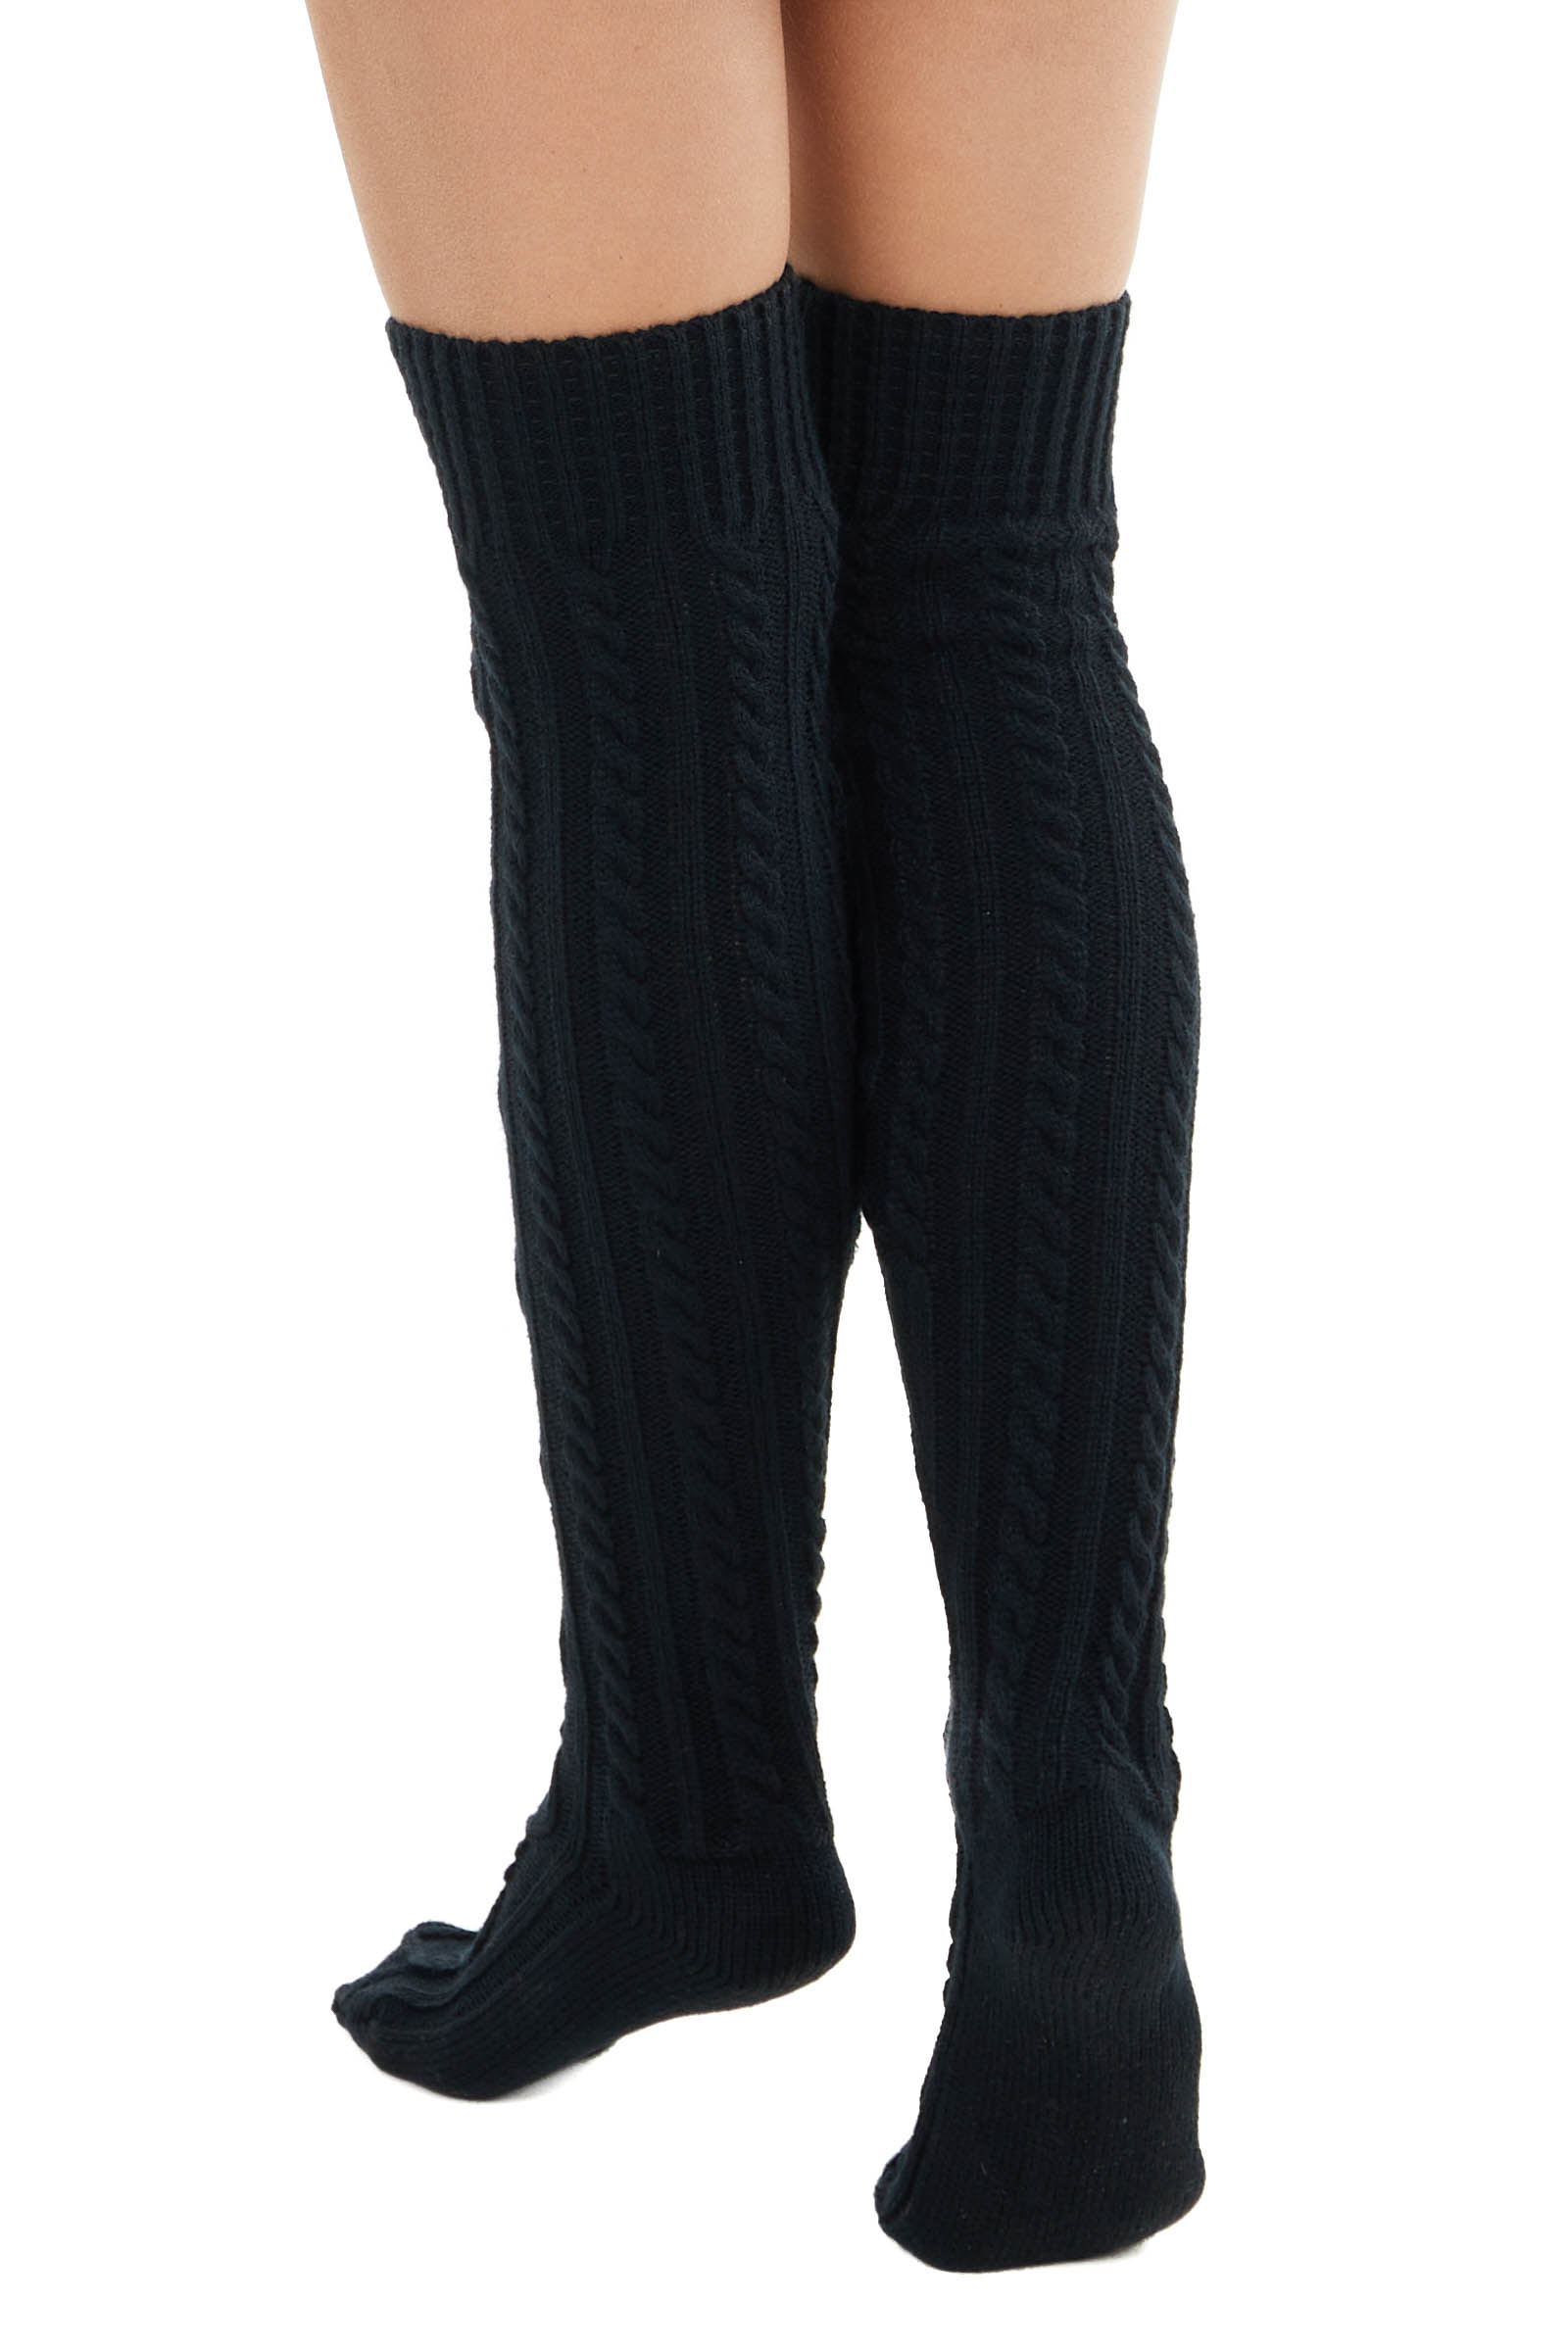 Black Cable Knit Over the Knee High Fashion Socks